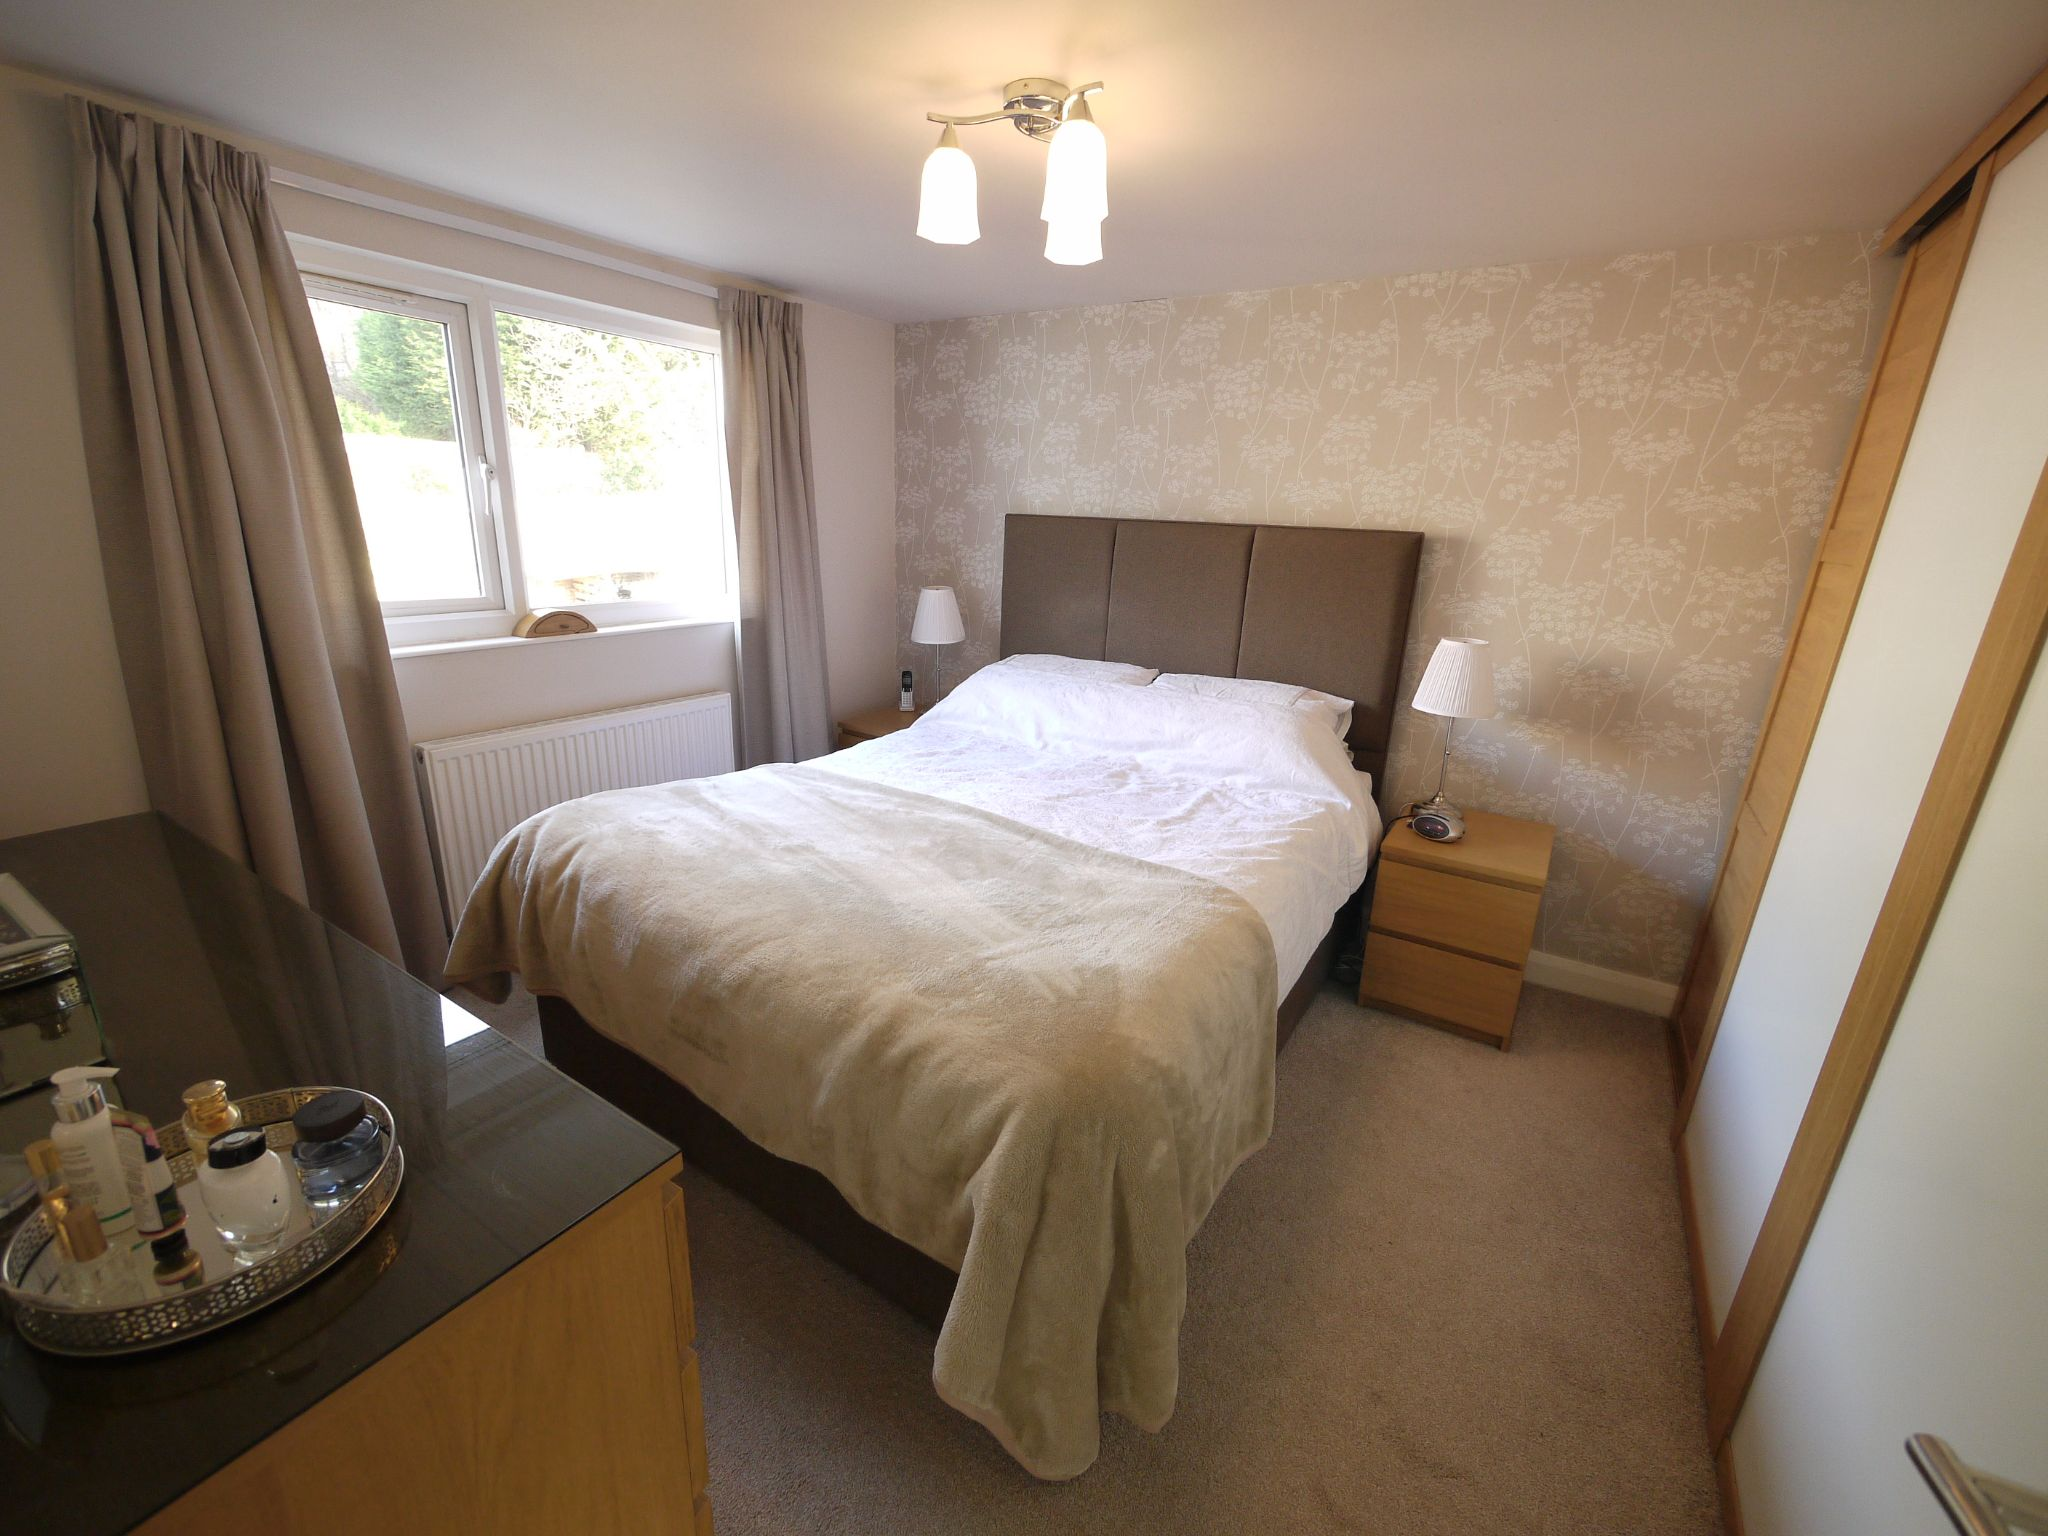 3 bedroom semi-detached house SSTC in Halifax - bed1.